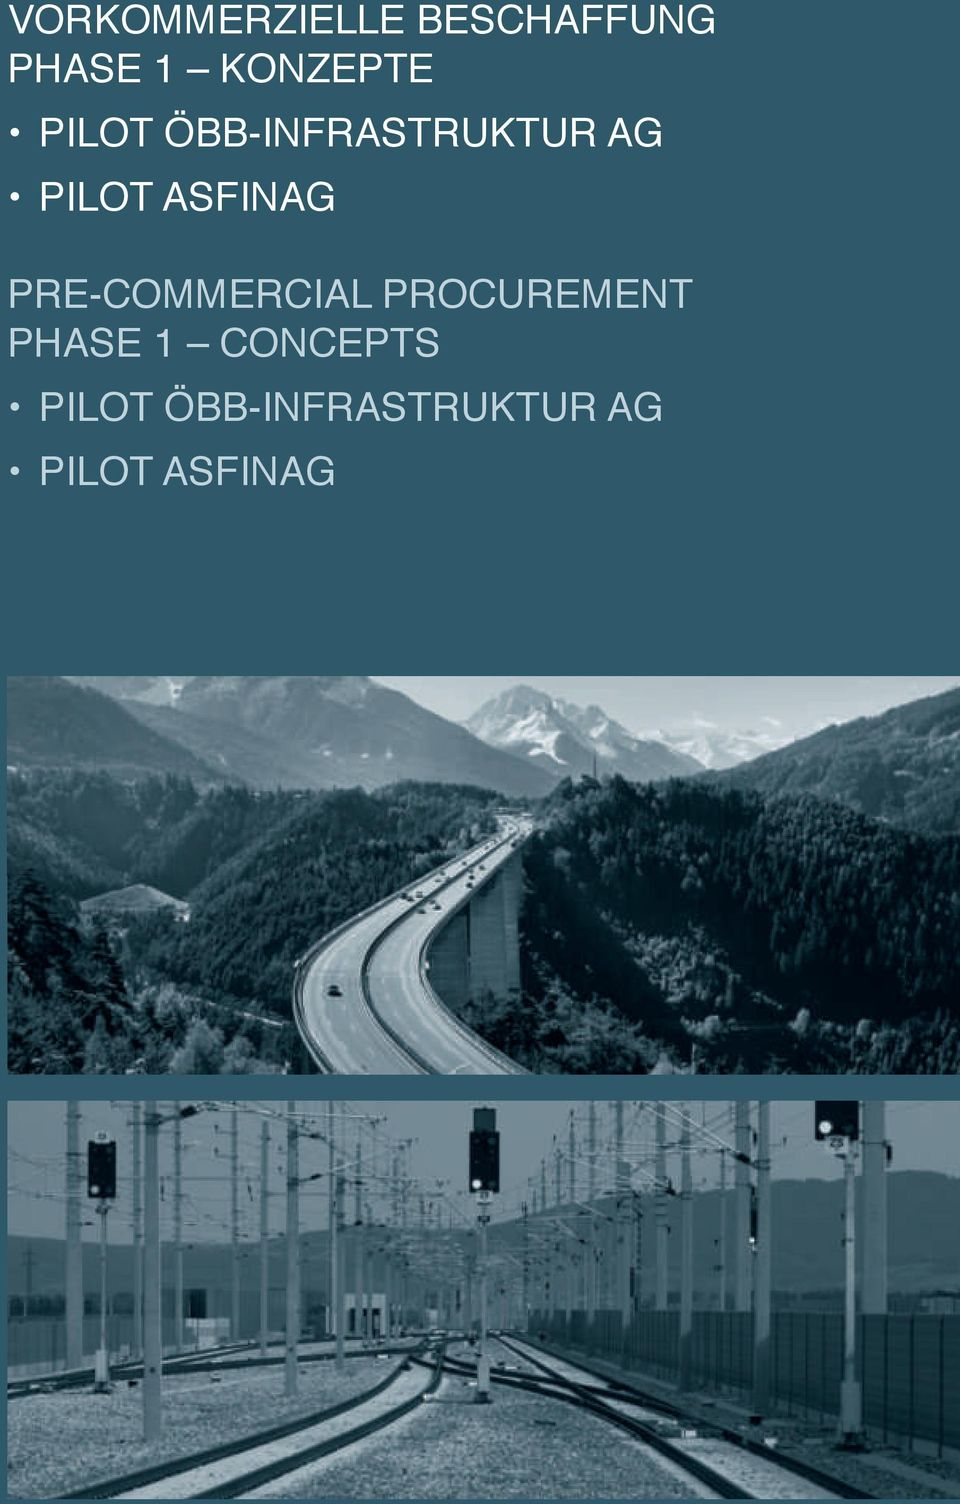 ASFINAG PRE-COMMERCIAL PROCUREMENT PhASE 1